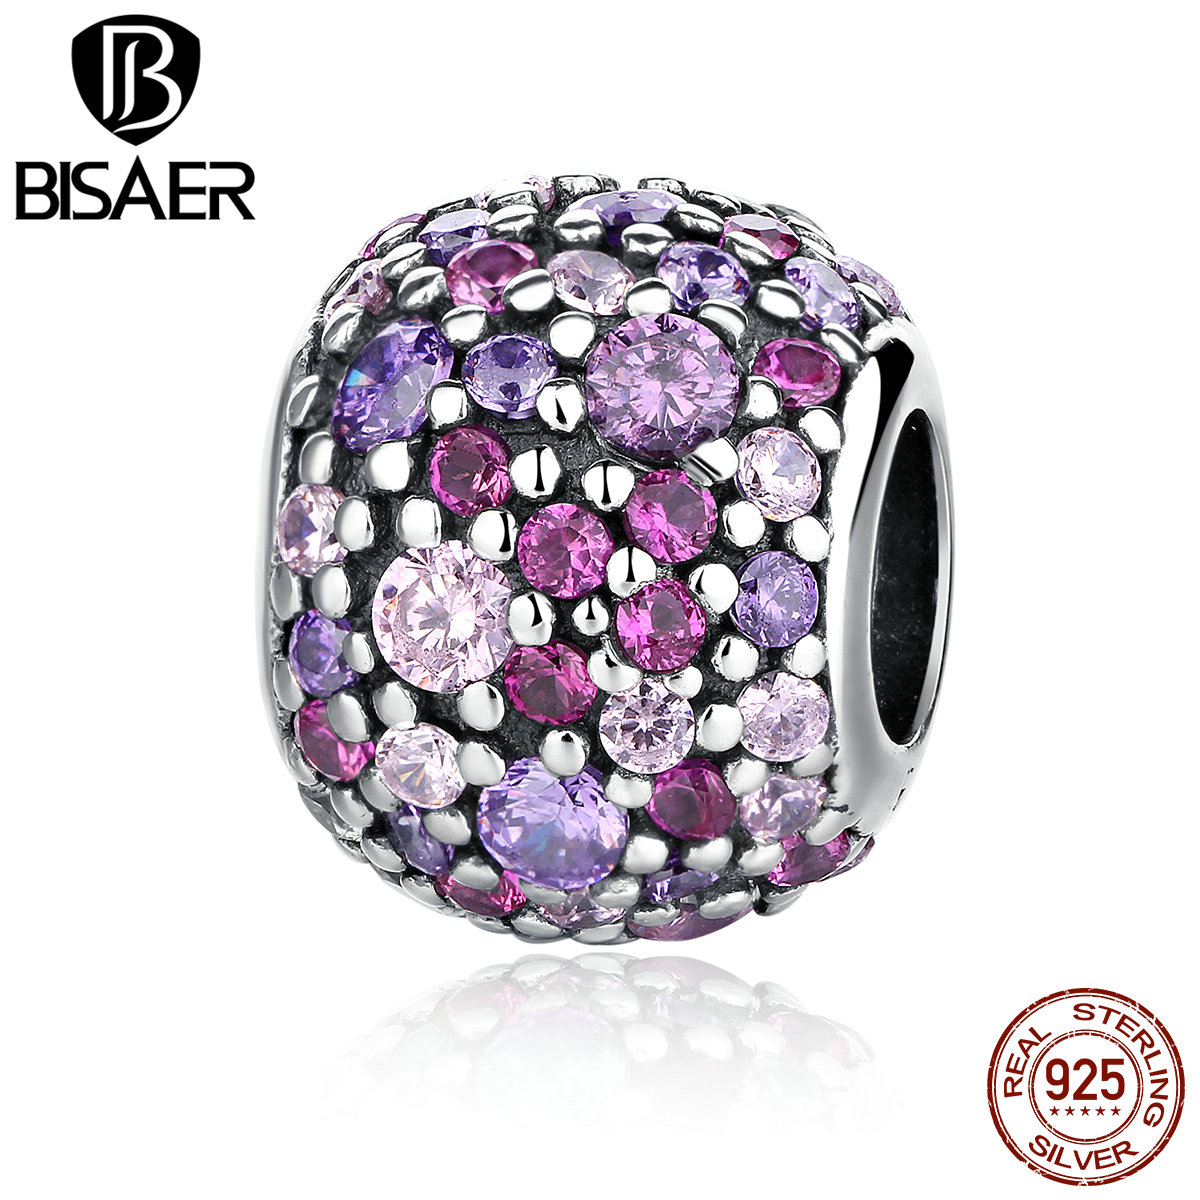 Genuine 925 Sterling Silver Pink Sparkles Pave Ball Beads Charms Pendant fit Original Charm Pandora Bracelet